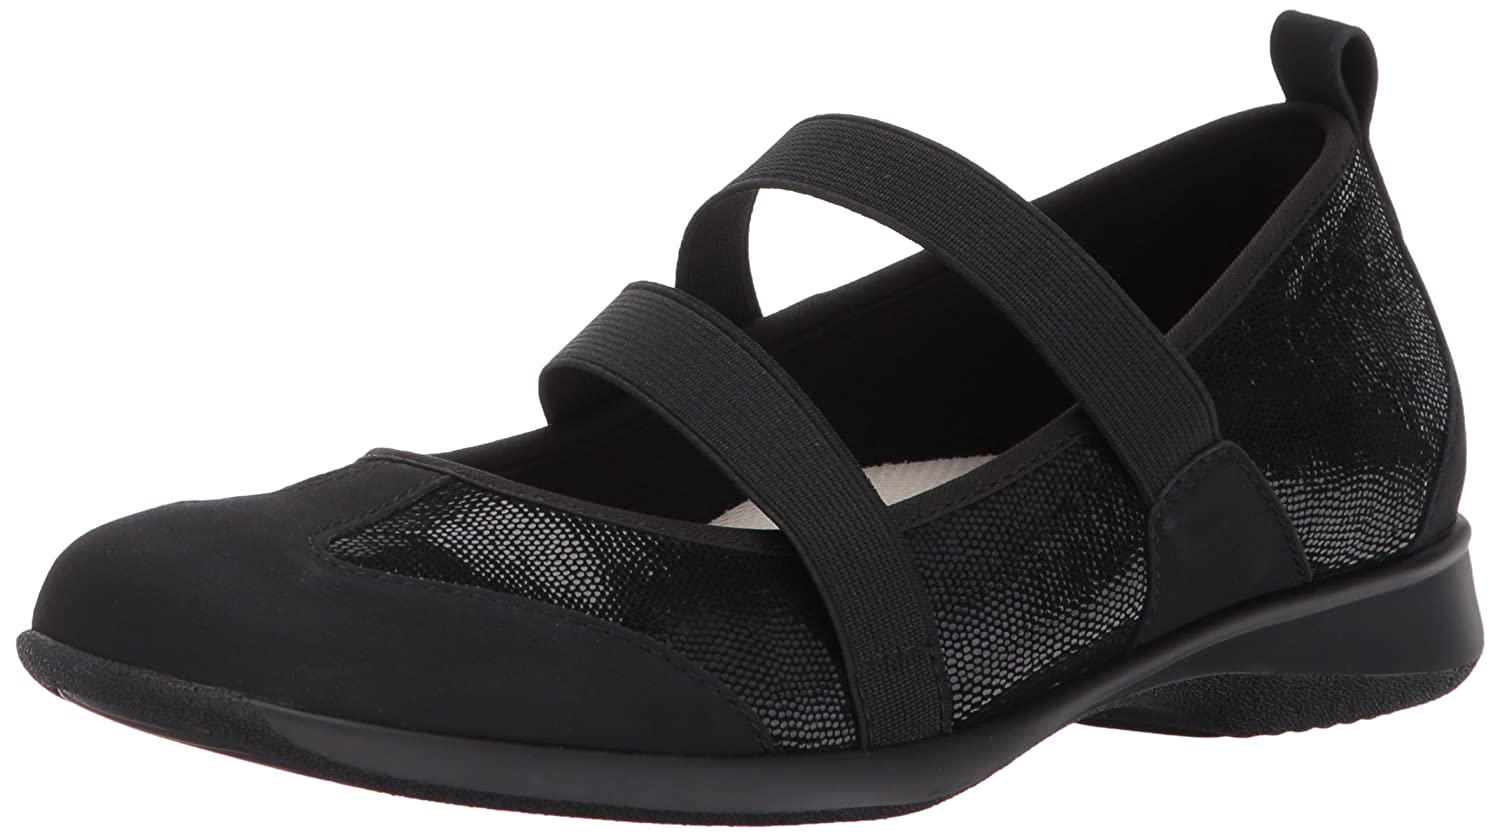 Trotters Women's Josie Mary Jane Flat B01NBNBIL1 10.5 B(M) US|Black